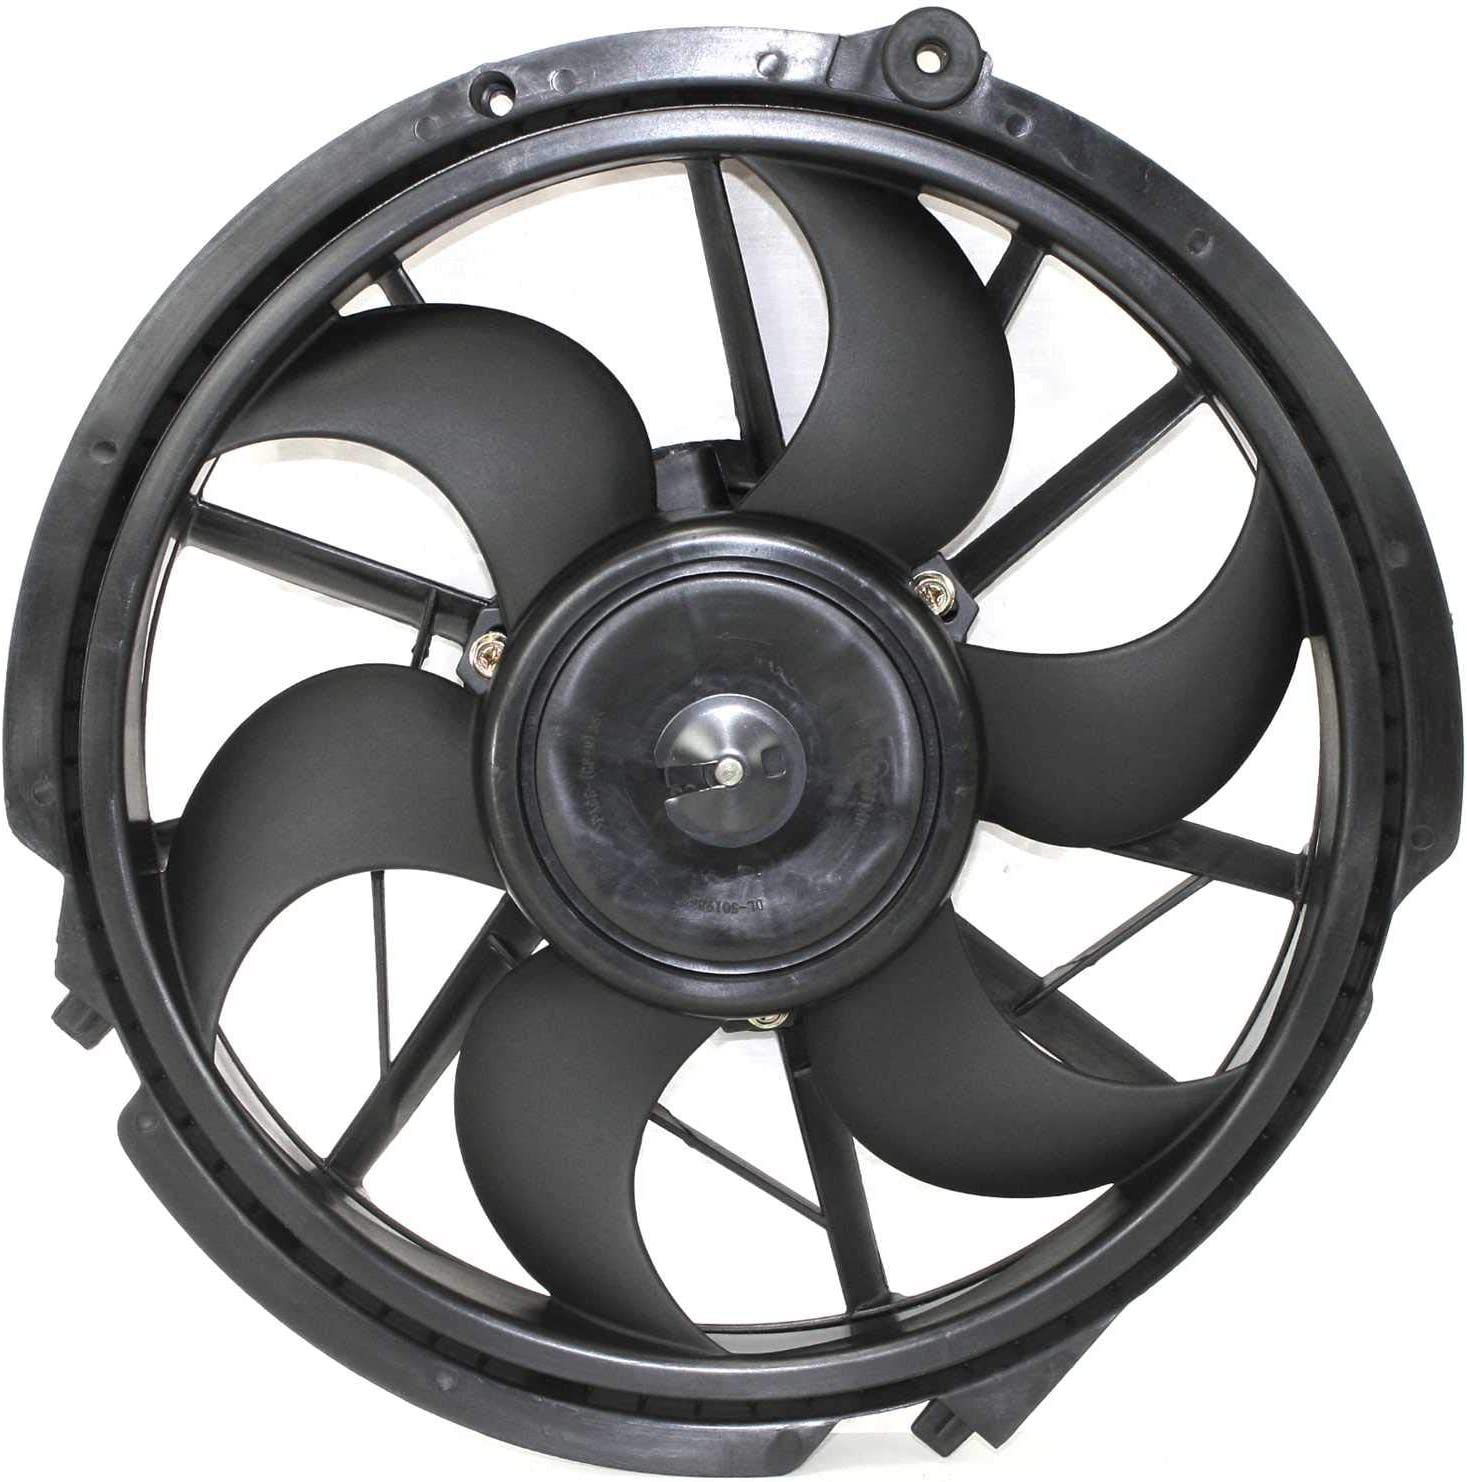 Radiator Fan Assembly for Ford Taurus 96-07 Left